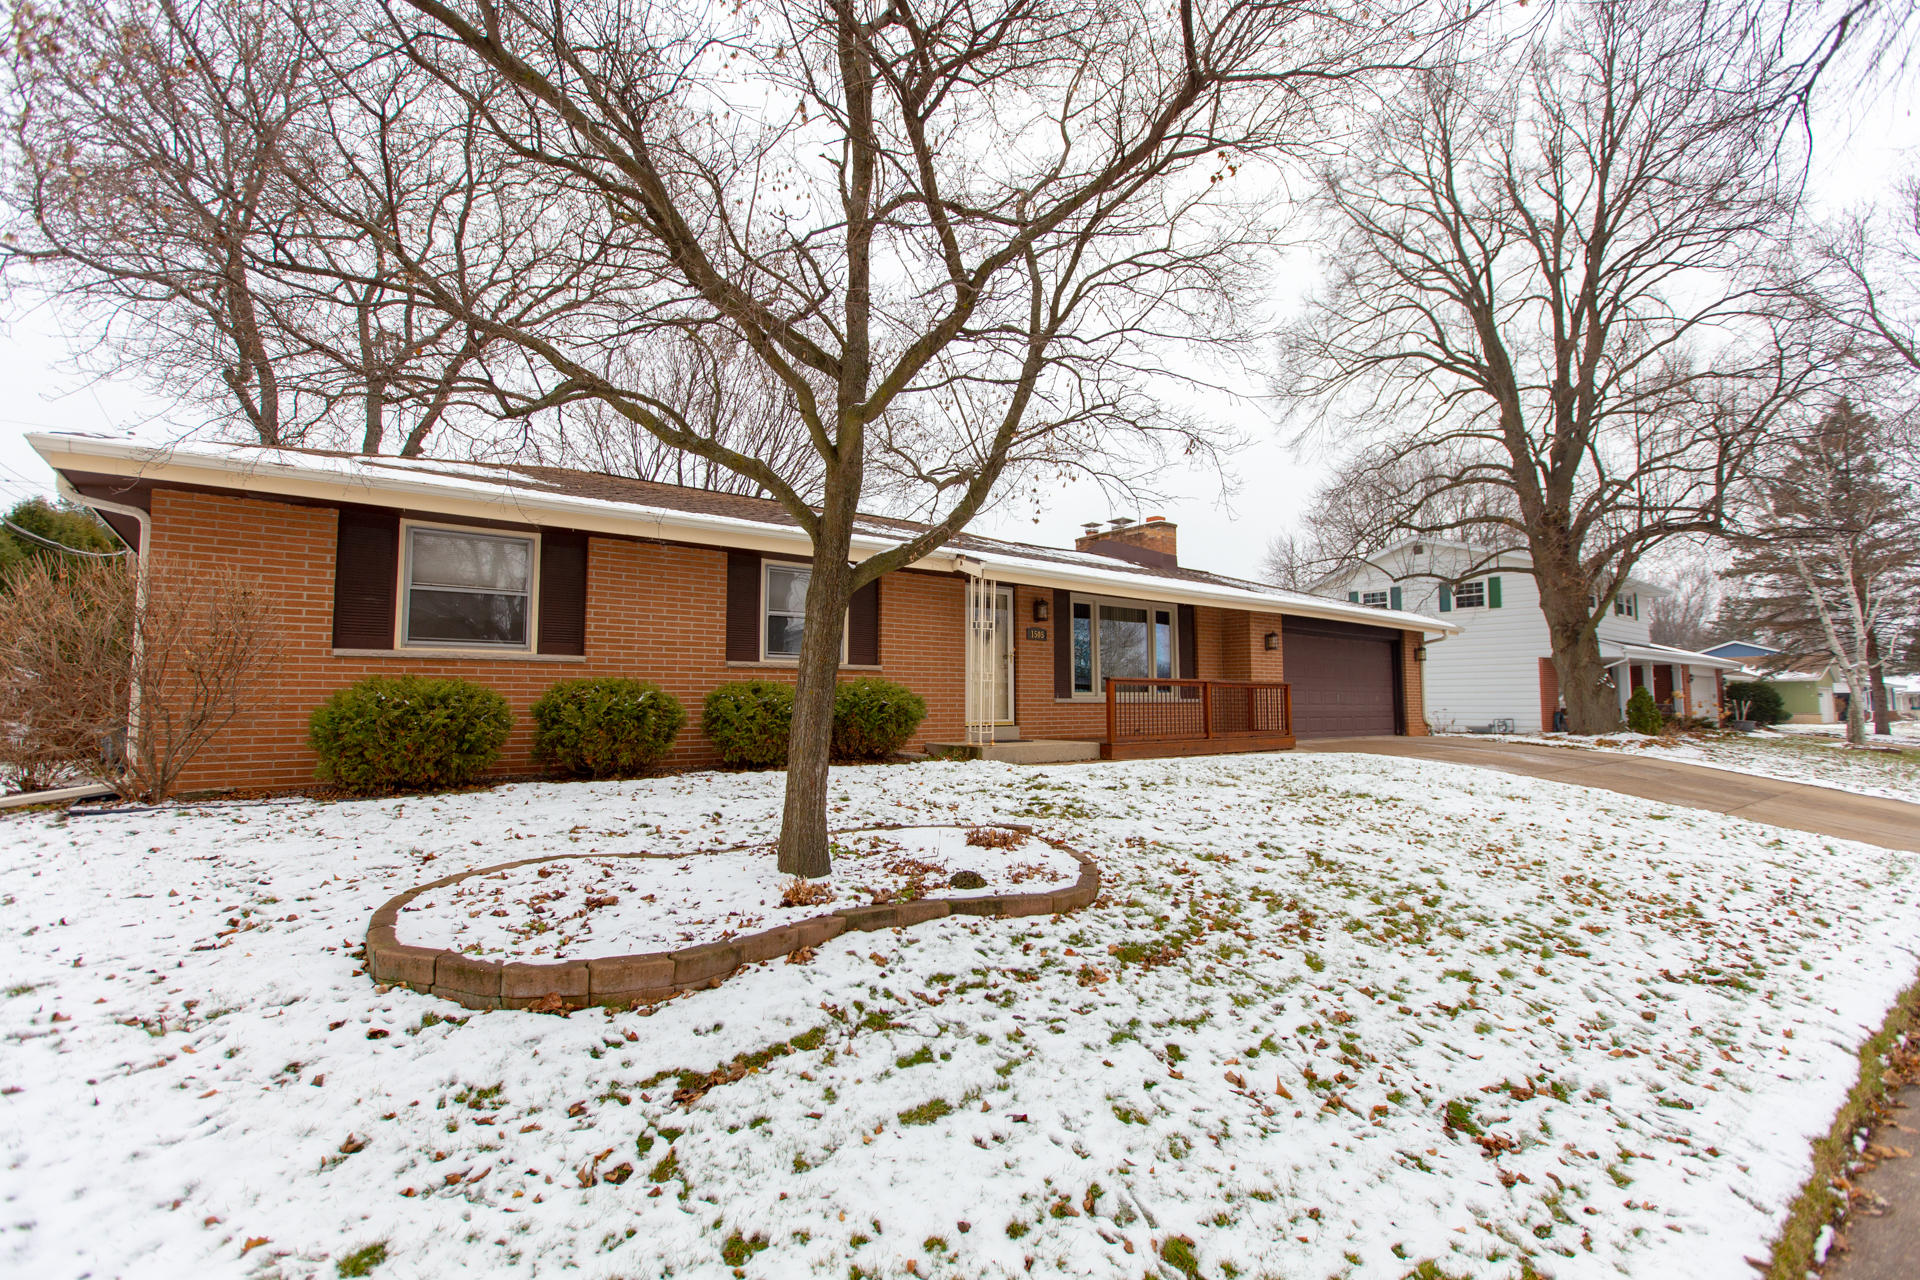 1505 Dixie Dr, Waukesha, Wisconsin 53189, 4 Bedrooms Bedrooms, 8 Rooms Rooms,1 BathroomBathrooms,Single-Family,For Sale,Dixie Dr,1615771